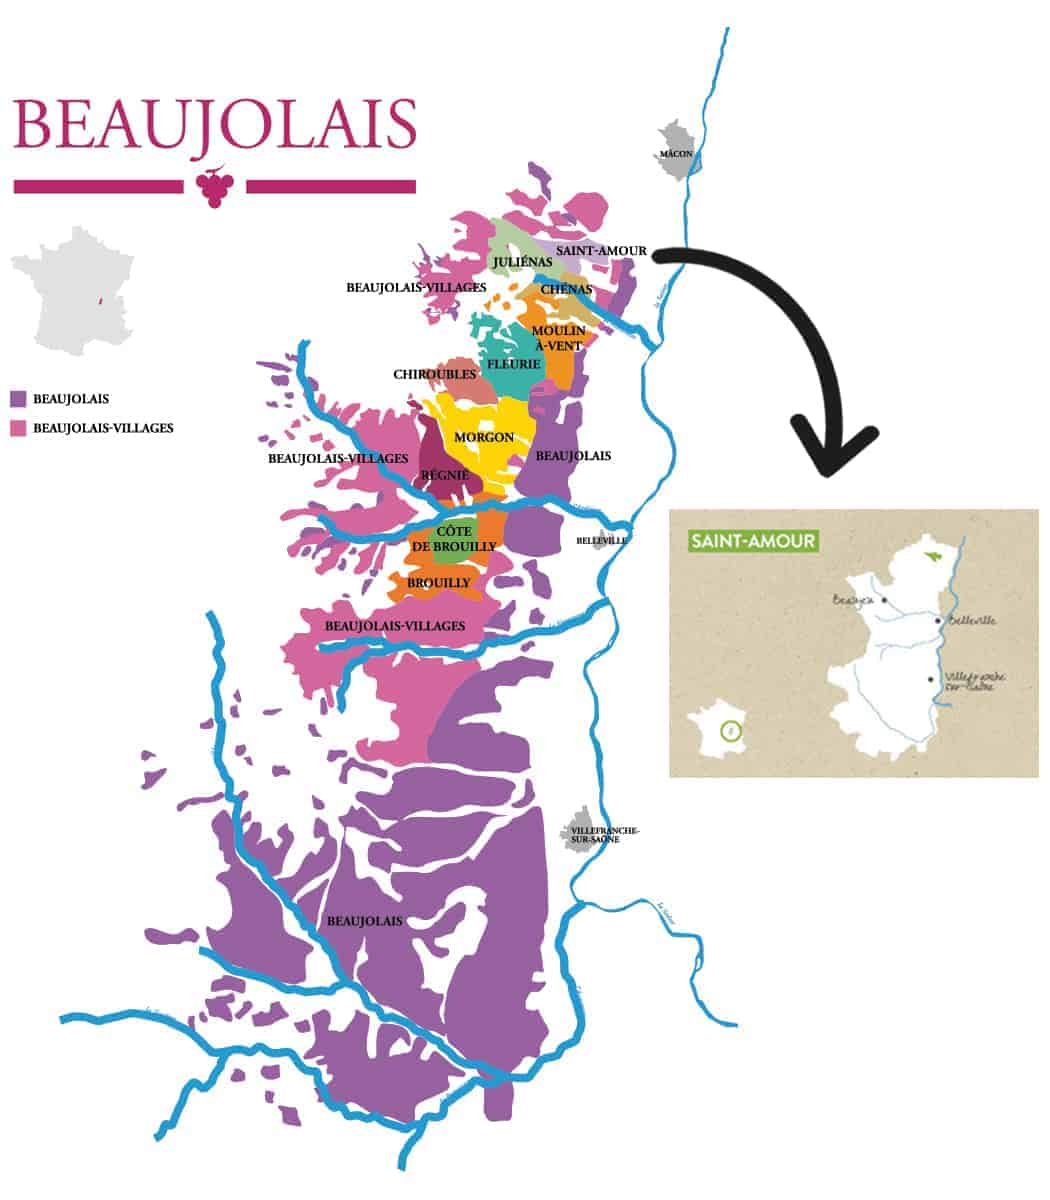 A map of Beaujolais with an inserted map of Saint-Amour